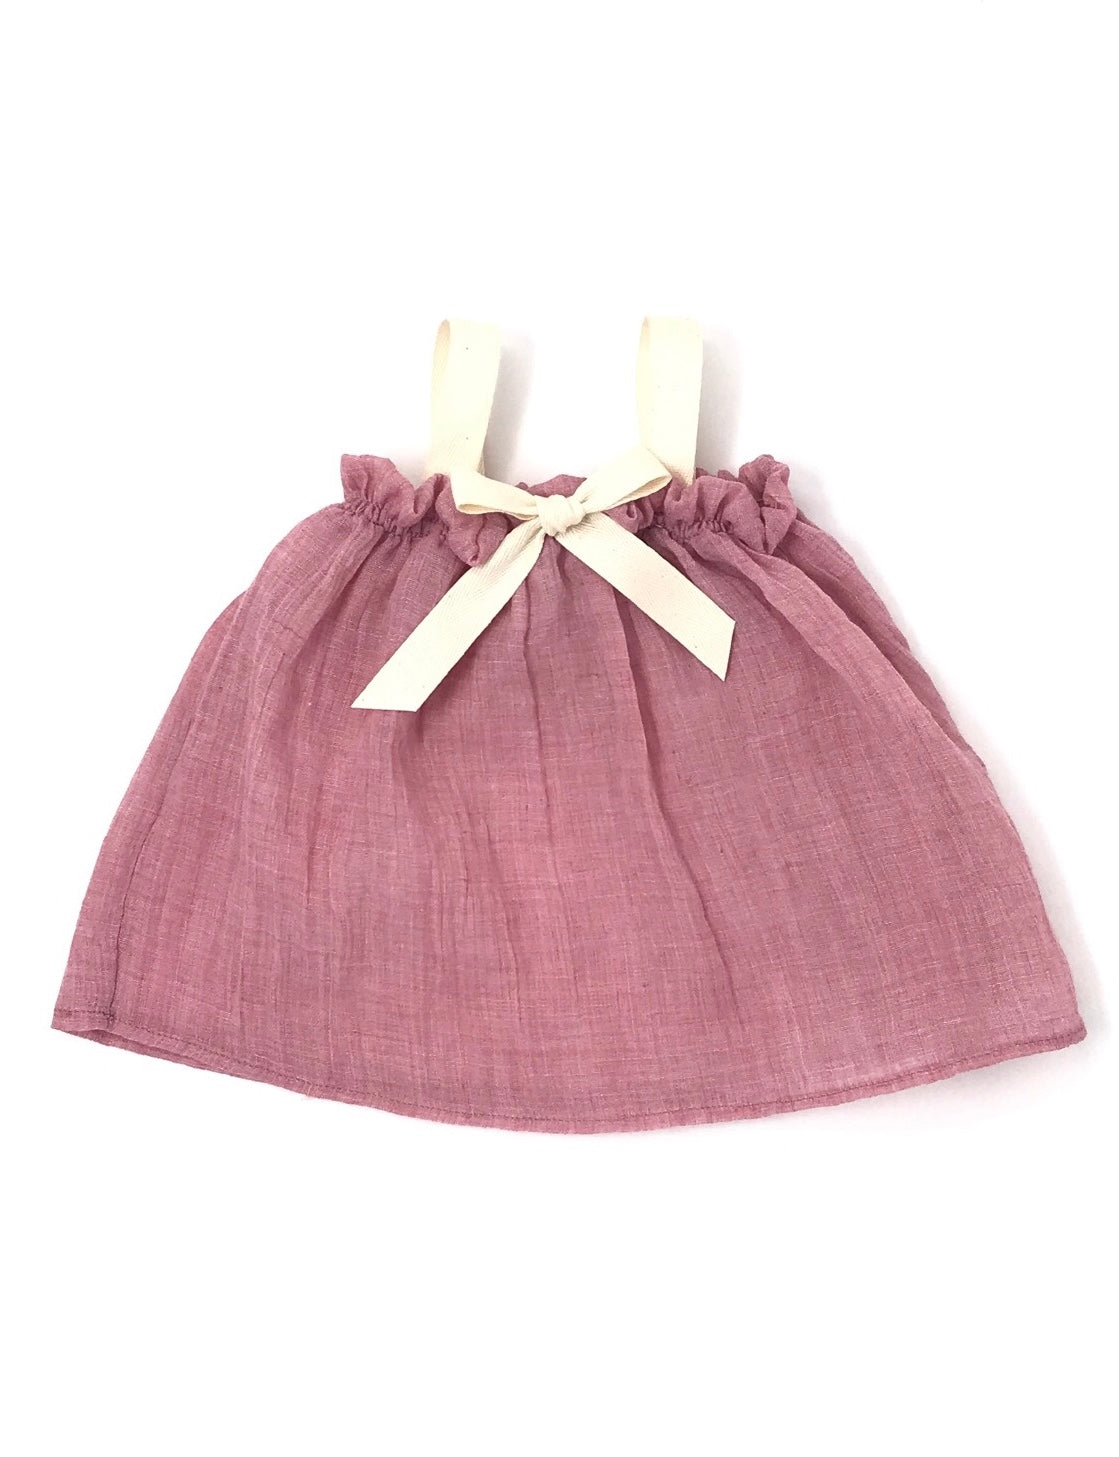 Pink Swing Top with Bow